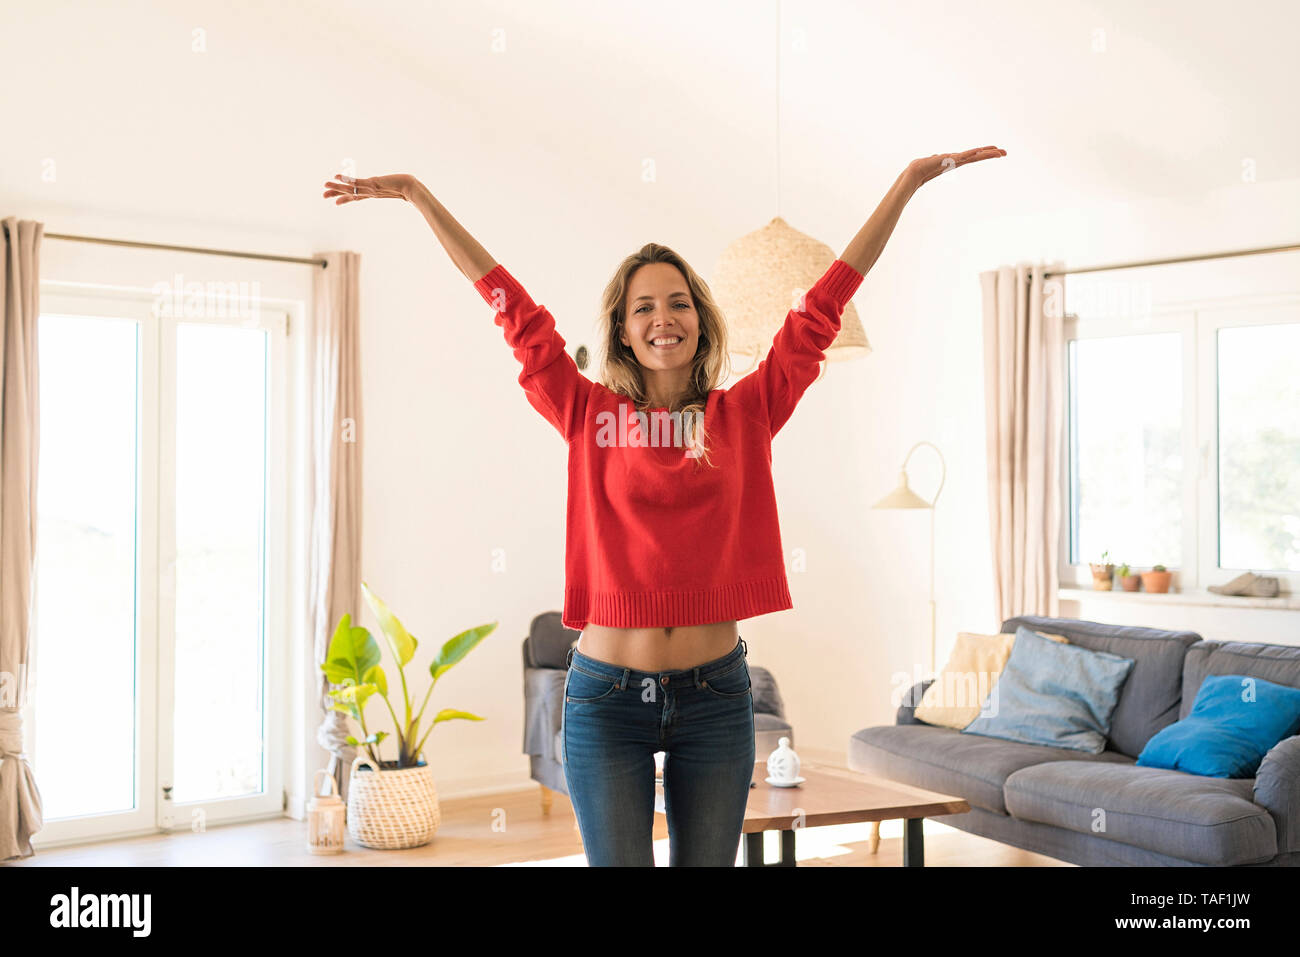 Portrait of carefree woman at home - Stock Image